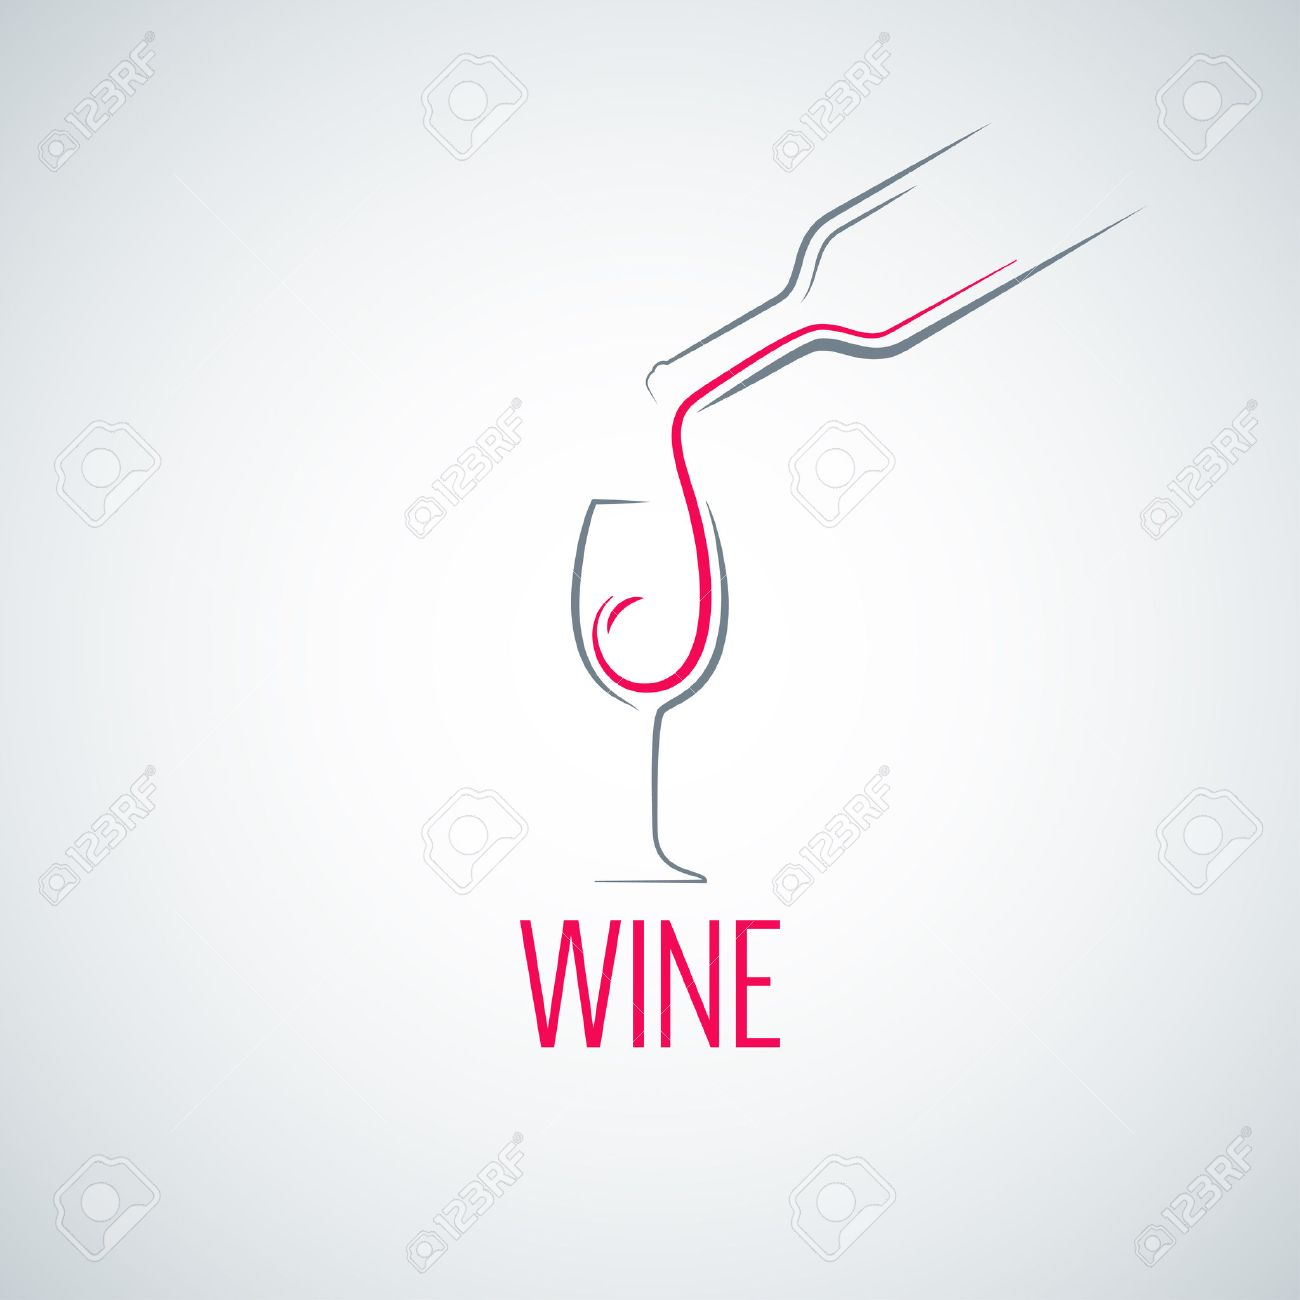 wine glass concept menu background royalty free cliparts, vectors